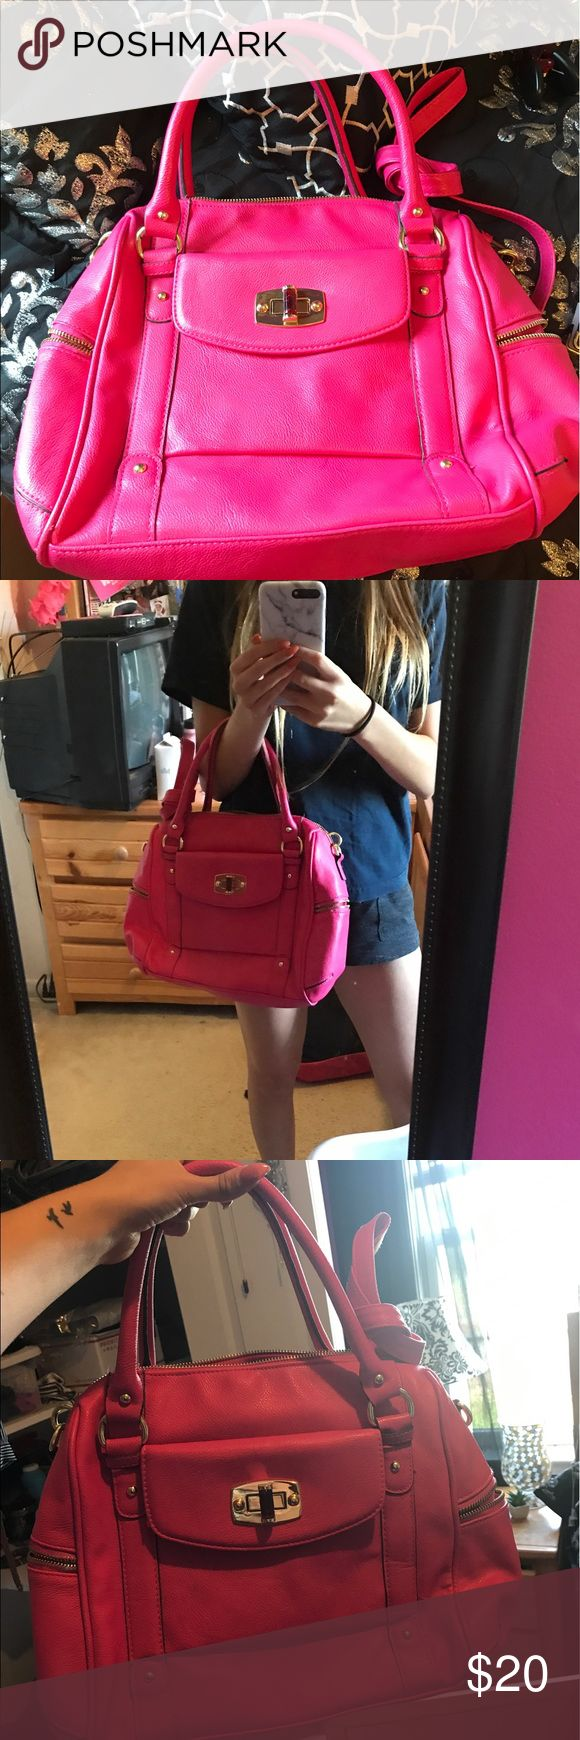 Large Pink Mossimo Target Purse Bag Crossbody So cute! I have this one and the smaller one. Such a quality bag for target. I have it in 3 colors haha Mossimo Supply Co. Bags Shoulder Bags